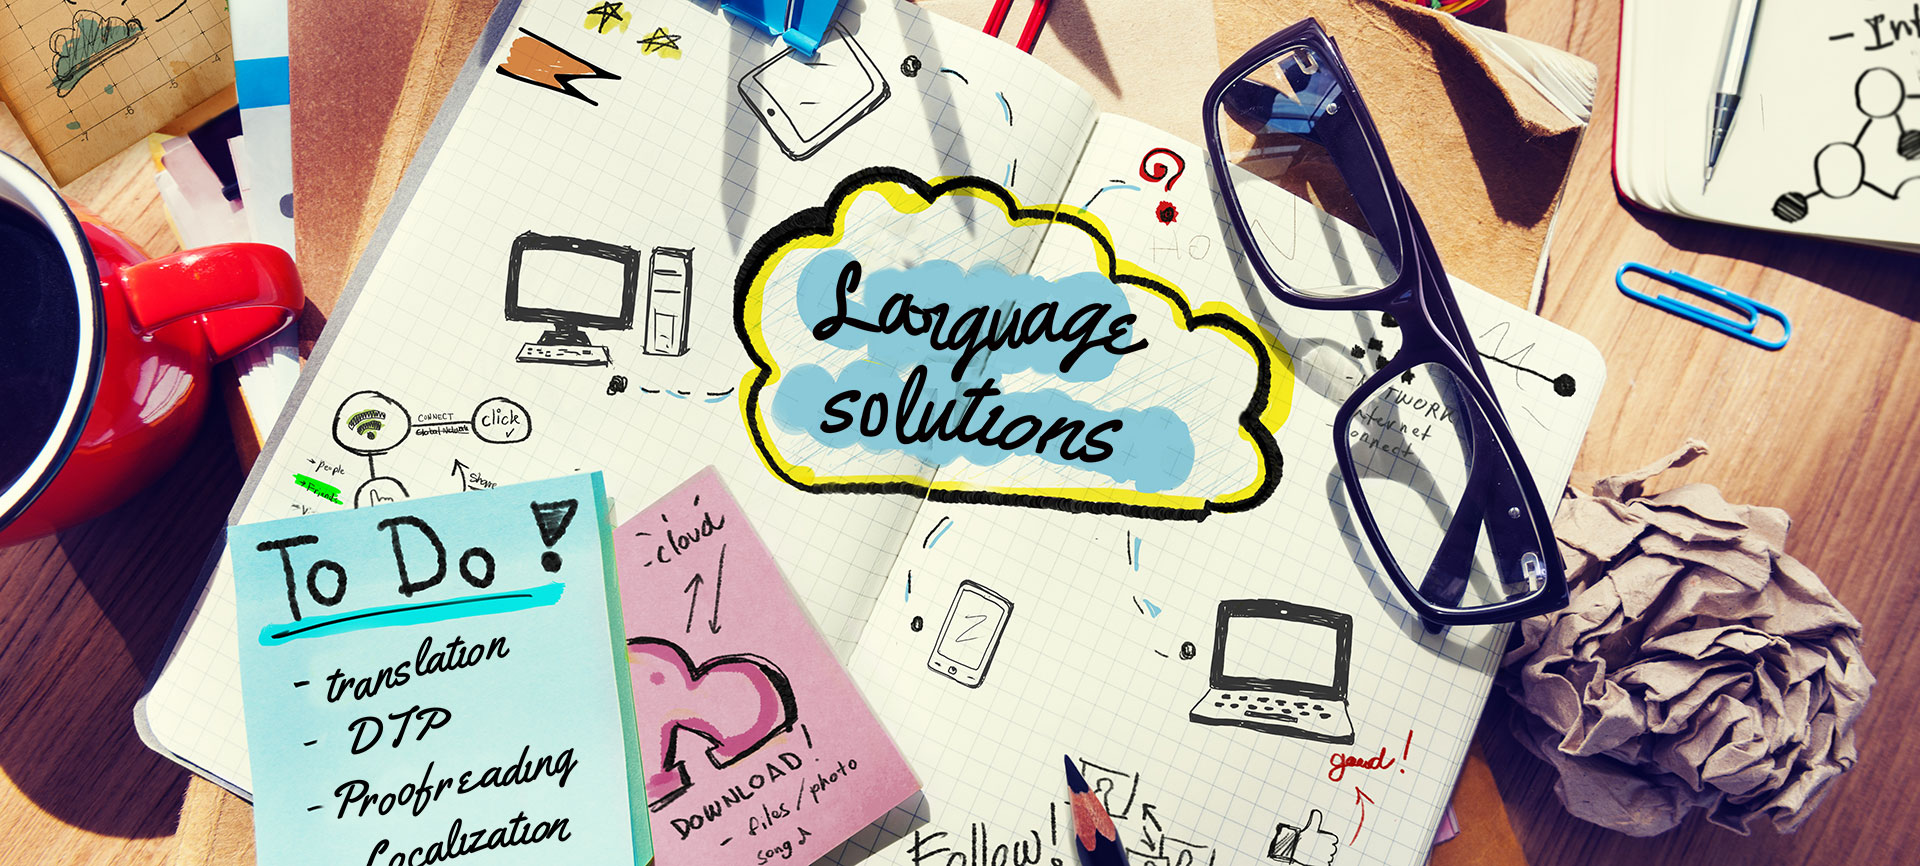 abyling-language-solutions